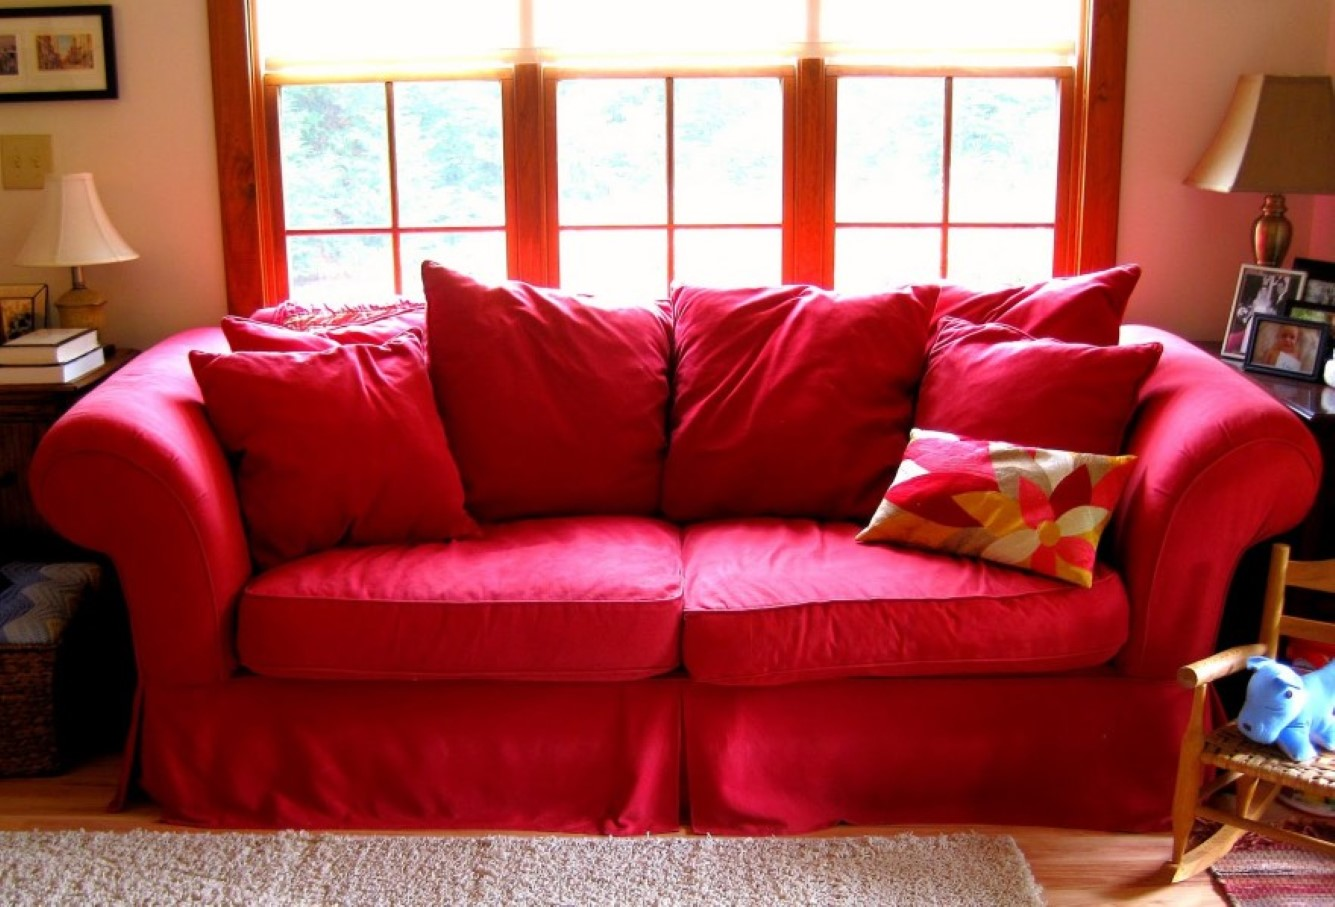 sofa designs in red colour leather modular perth couch cover for sectional  way to treat furniture wise